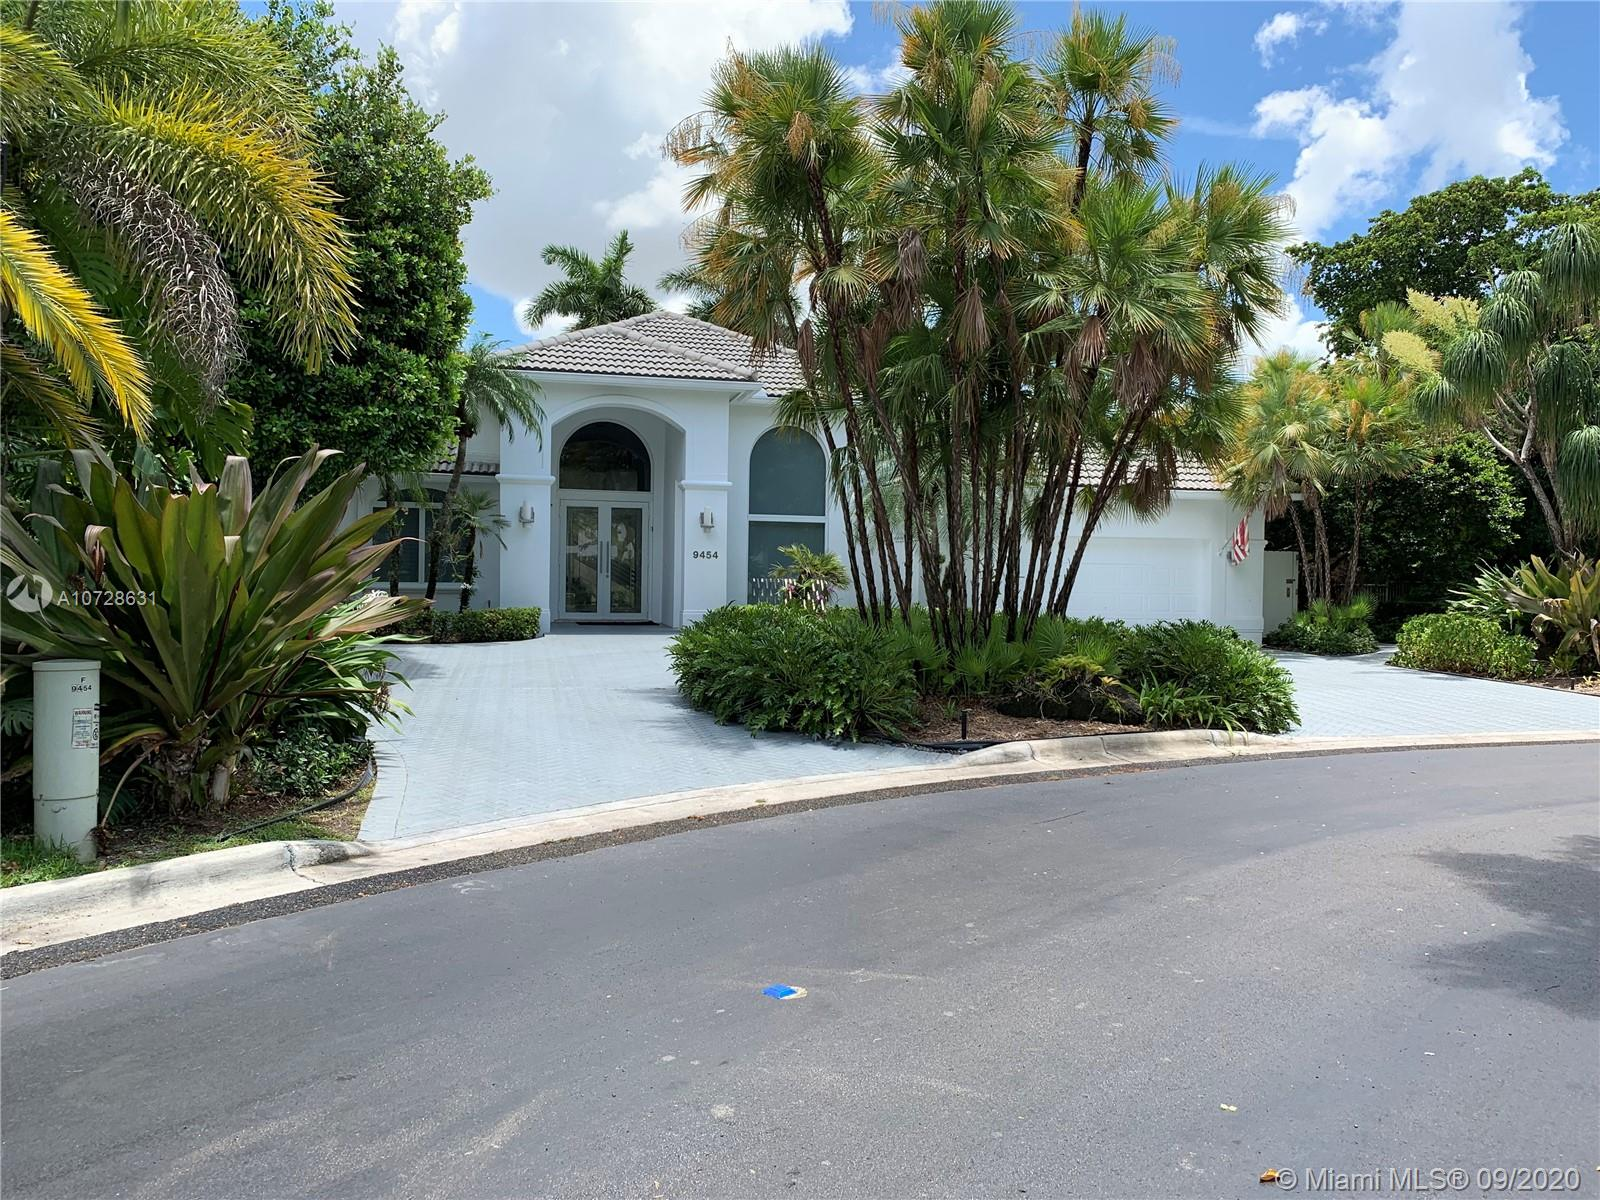 9454 NW 52nd Doral Ln, one of homes for sale in Doral